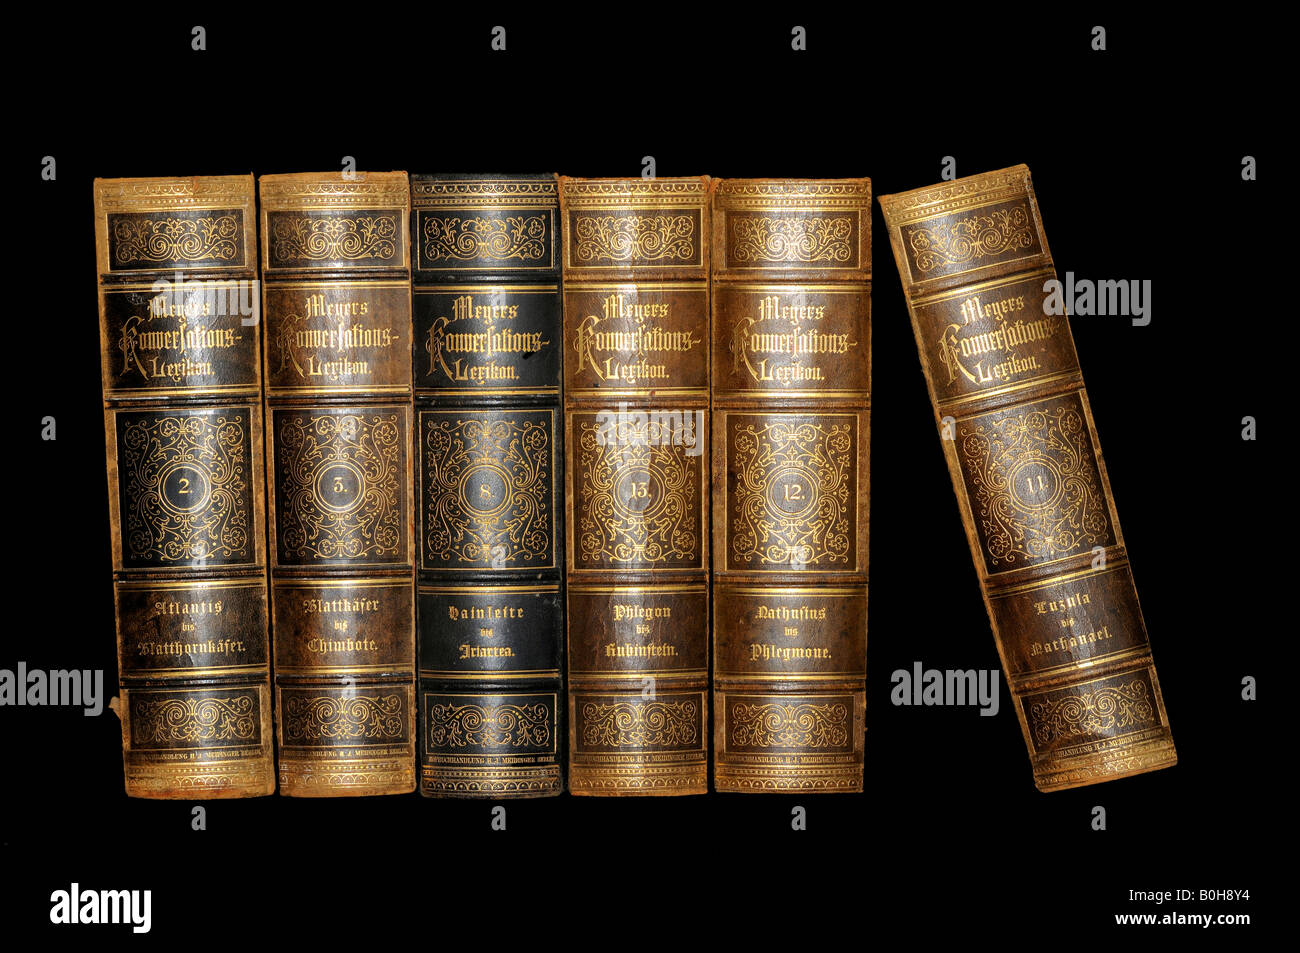 Old leather bound encyclopaedia - Stock Image